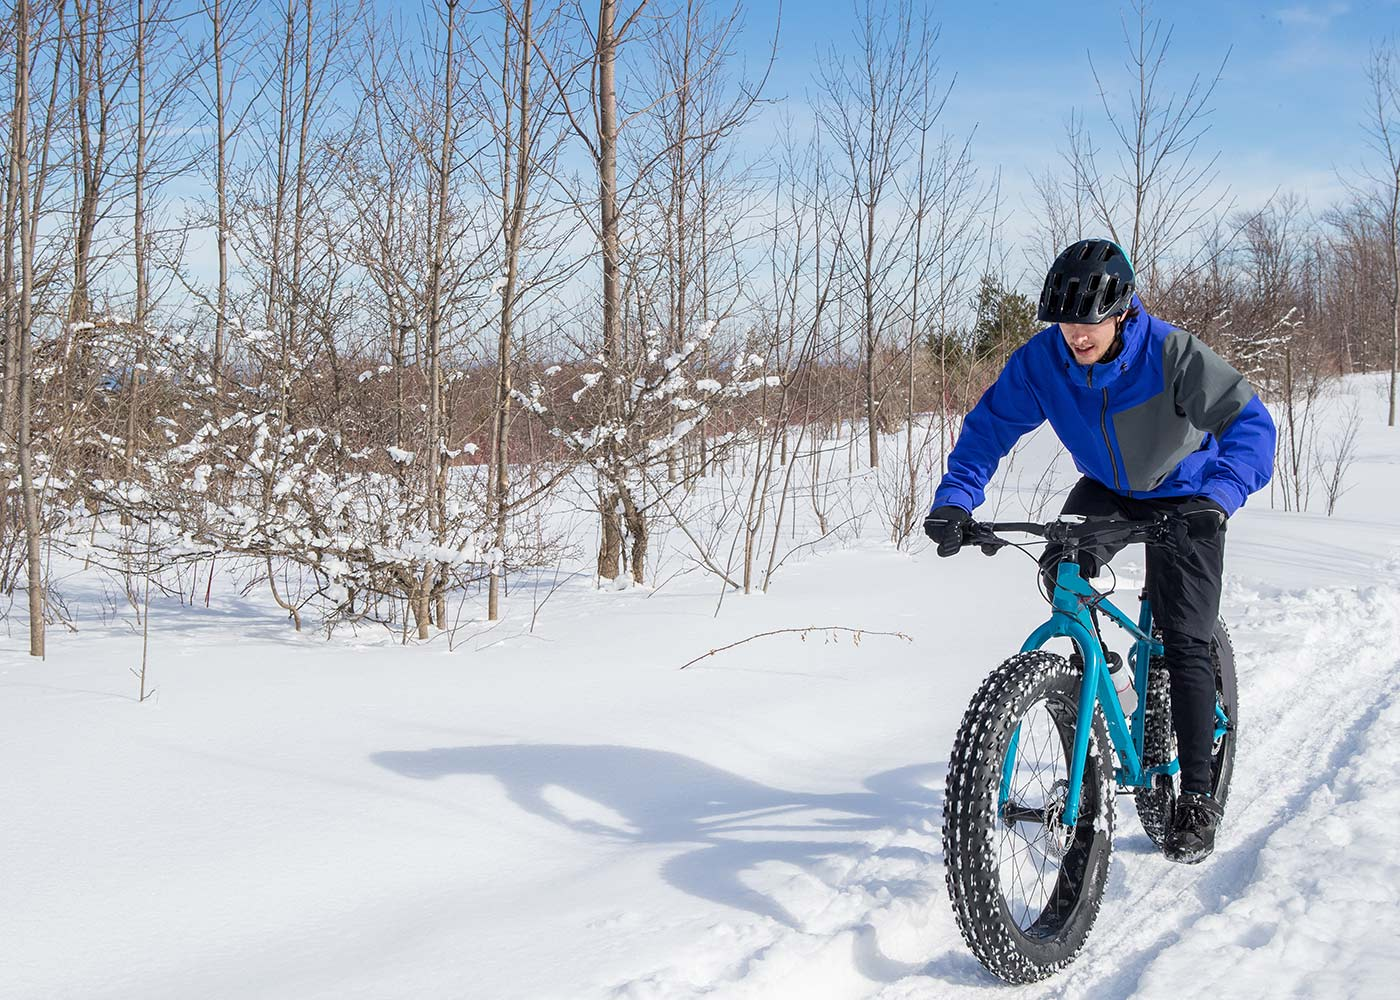 Tips for riding fat bike in snow